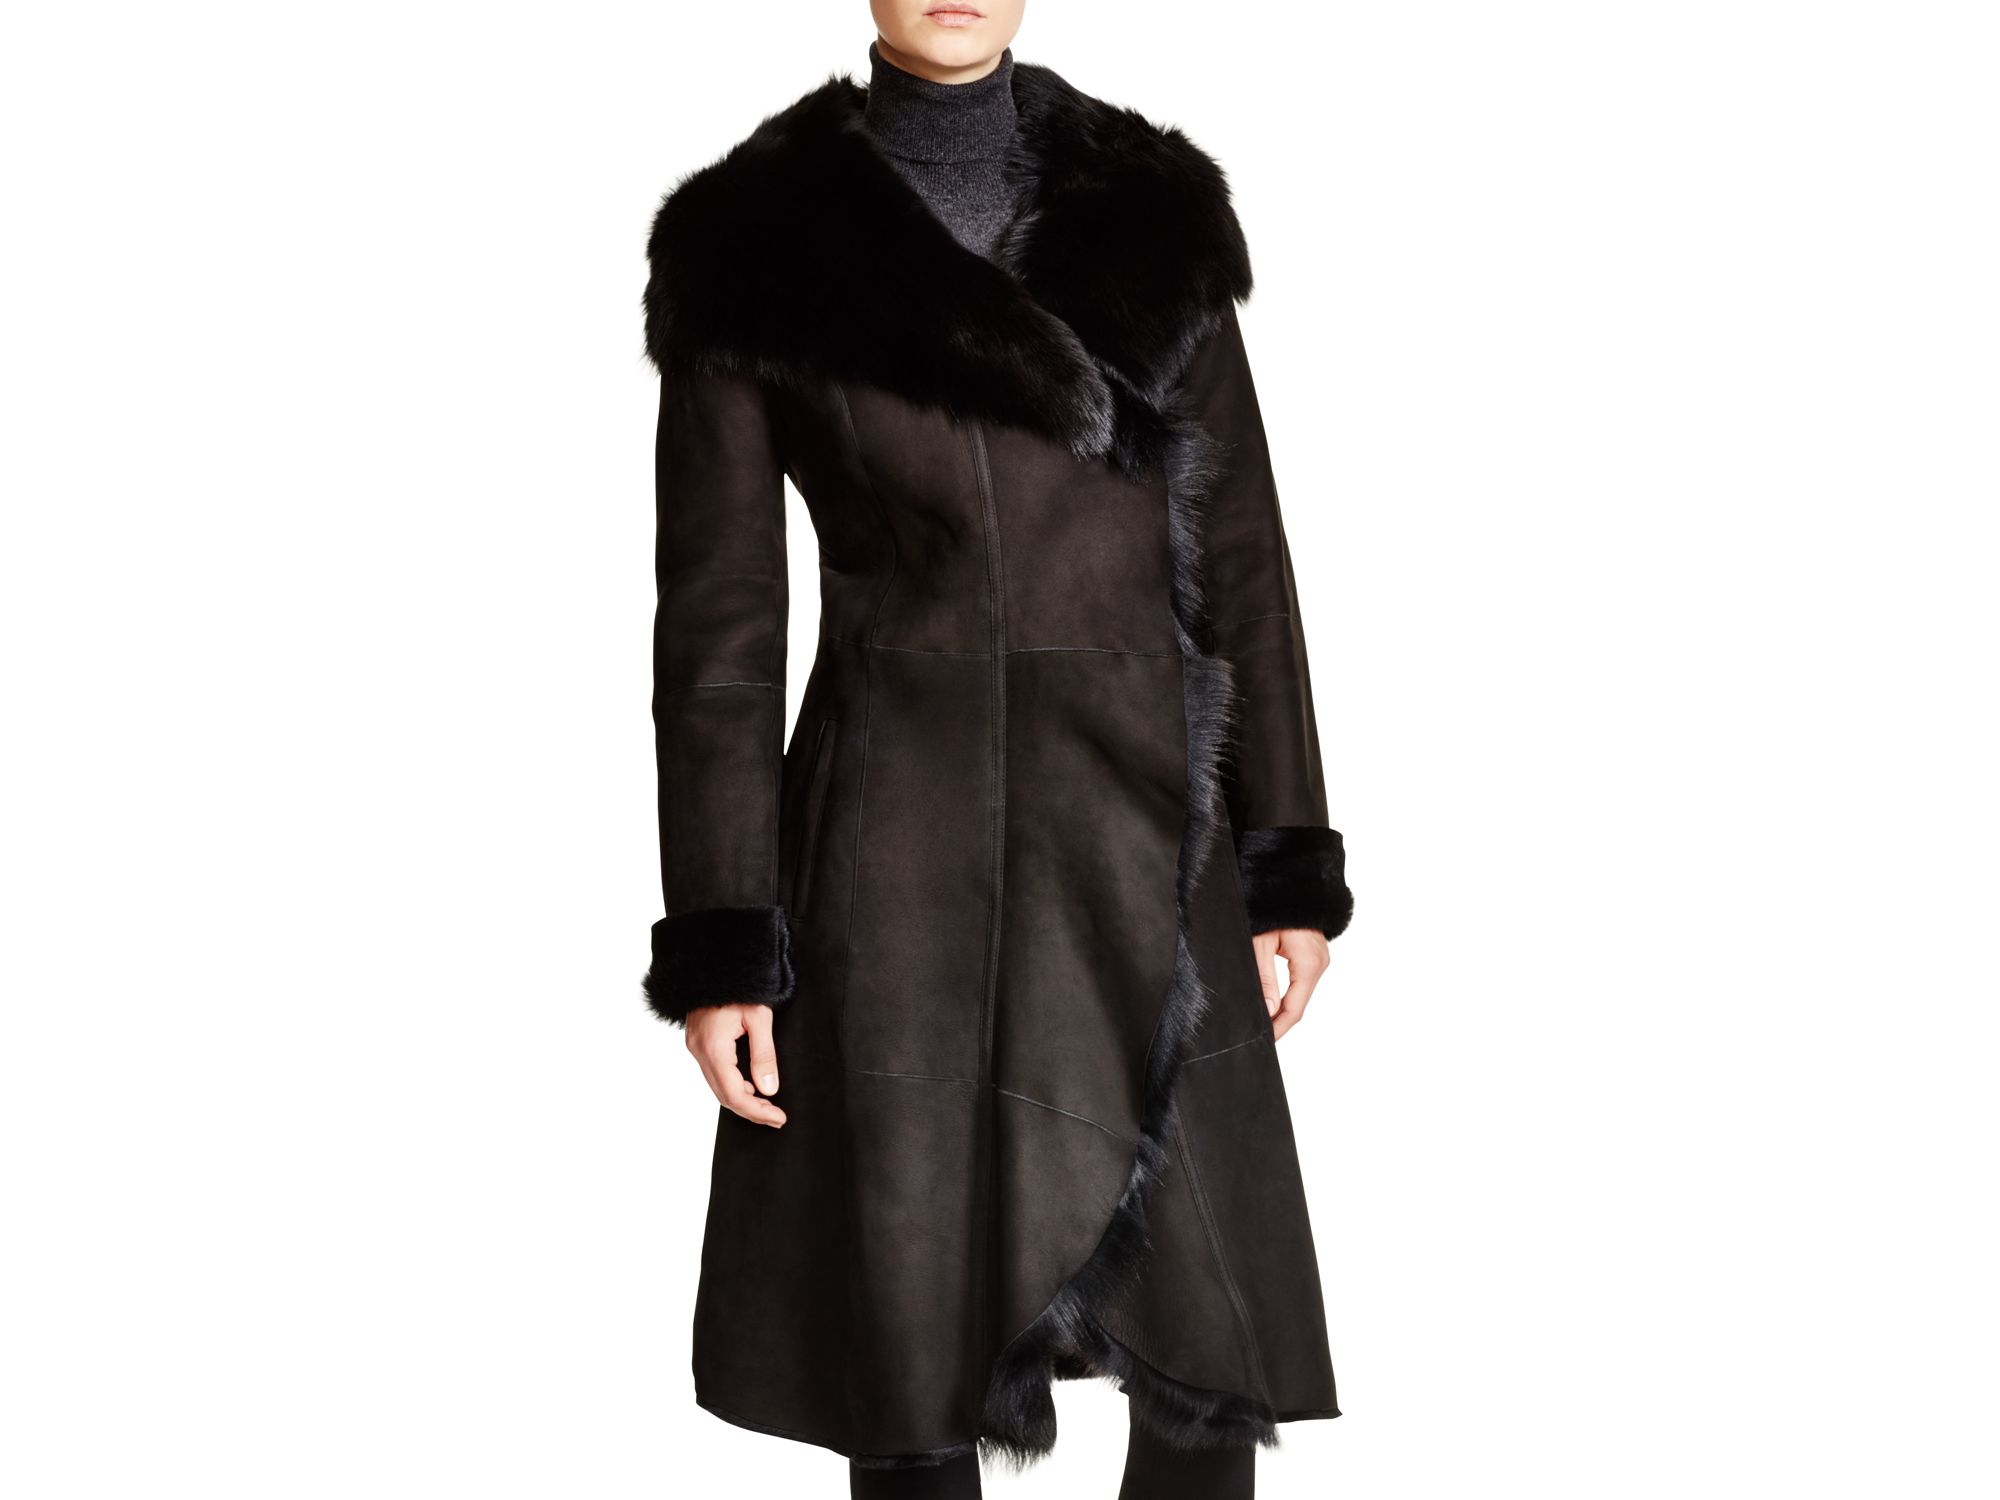 Maximilian Shearling Coat - Coat Nj